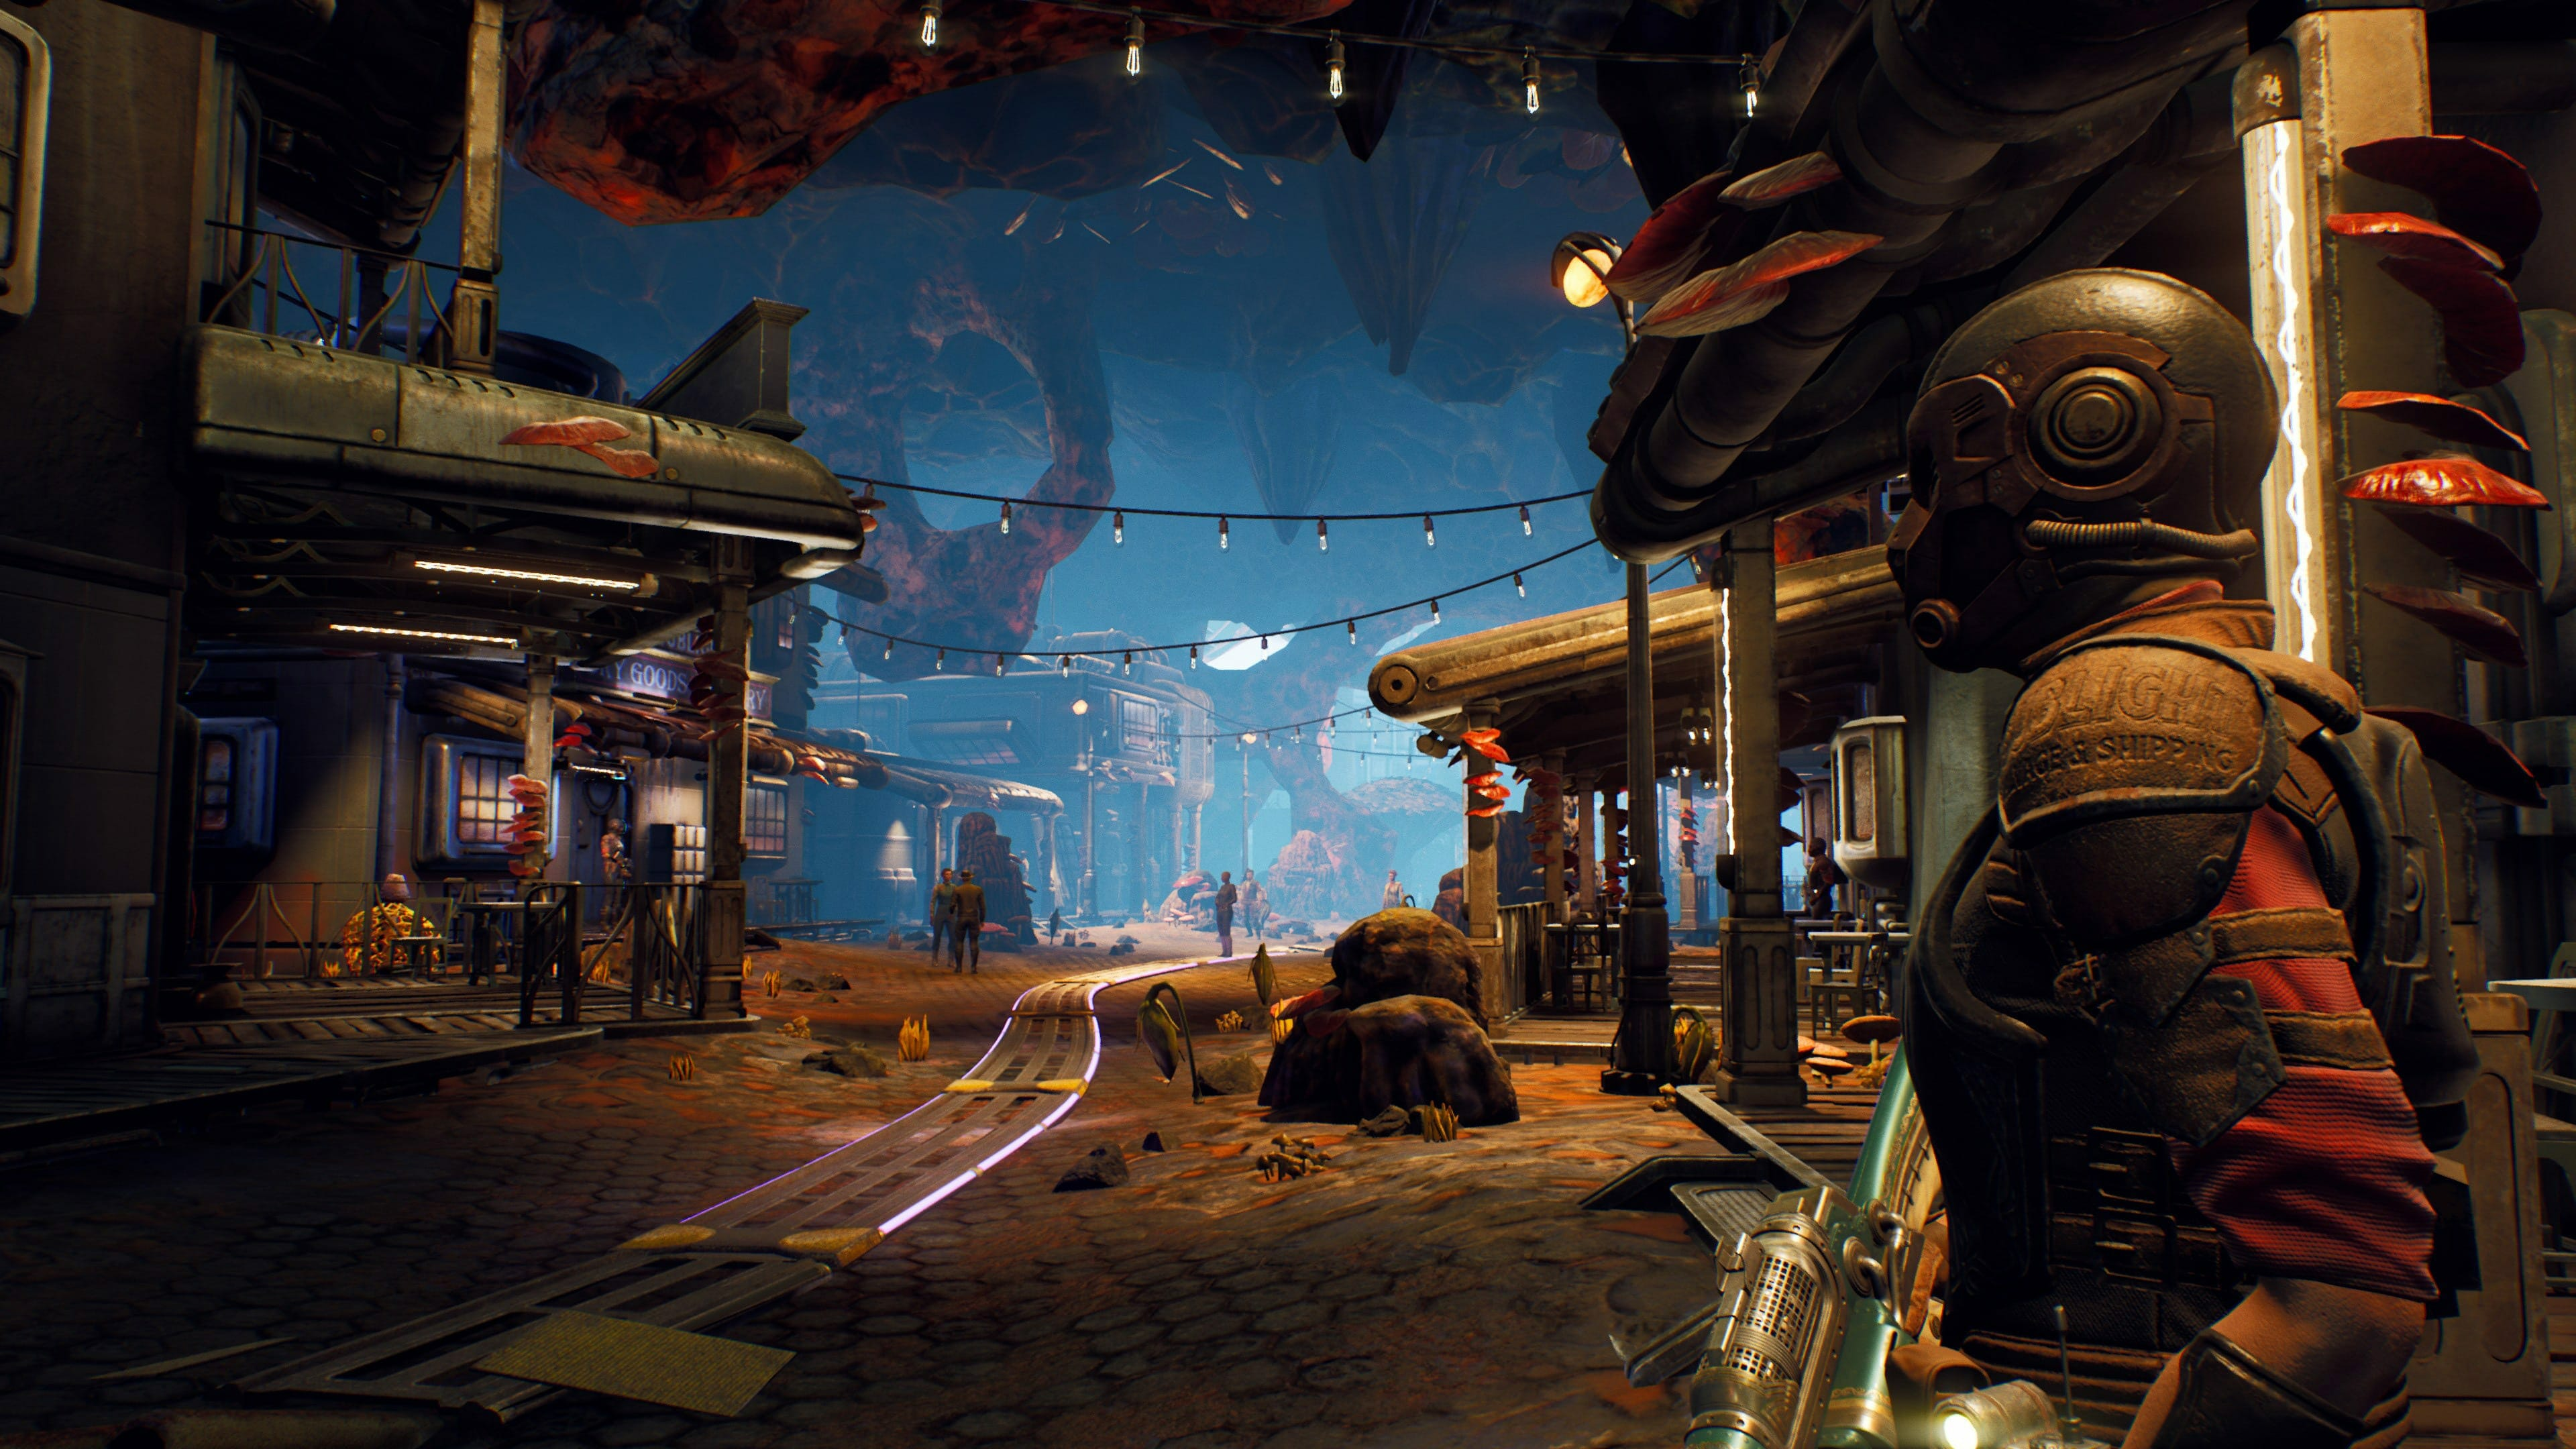 The Outer Worlds 0x803F8001 Error